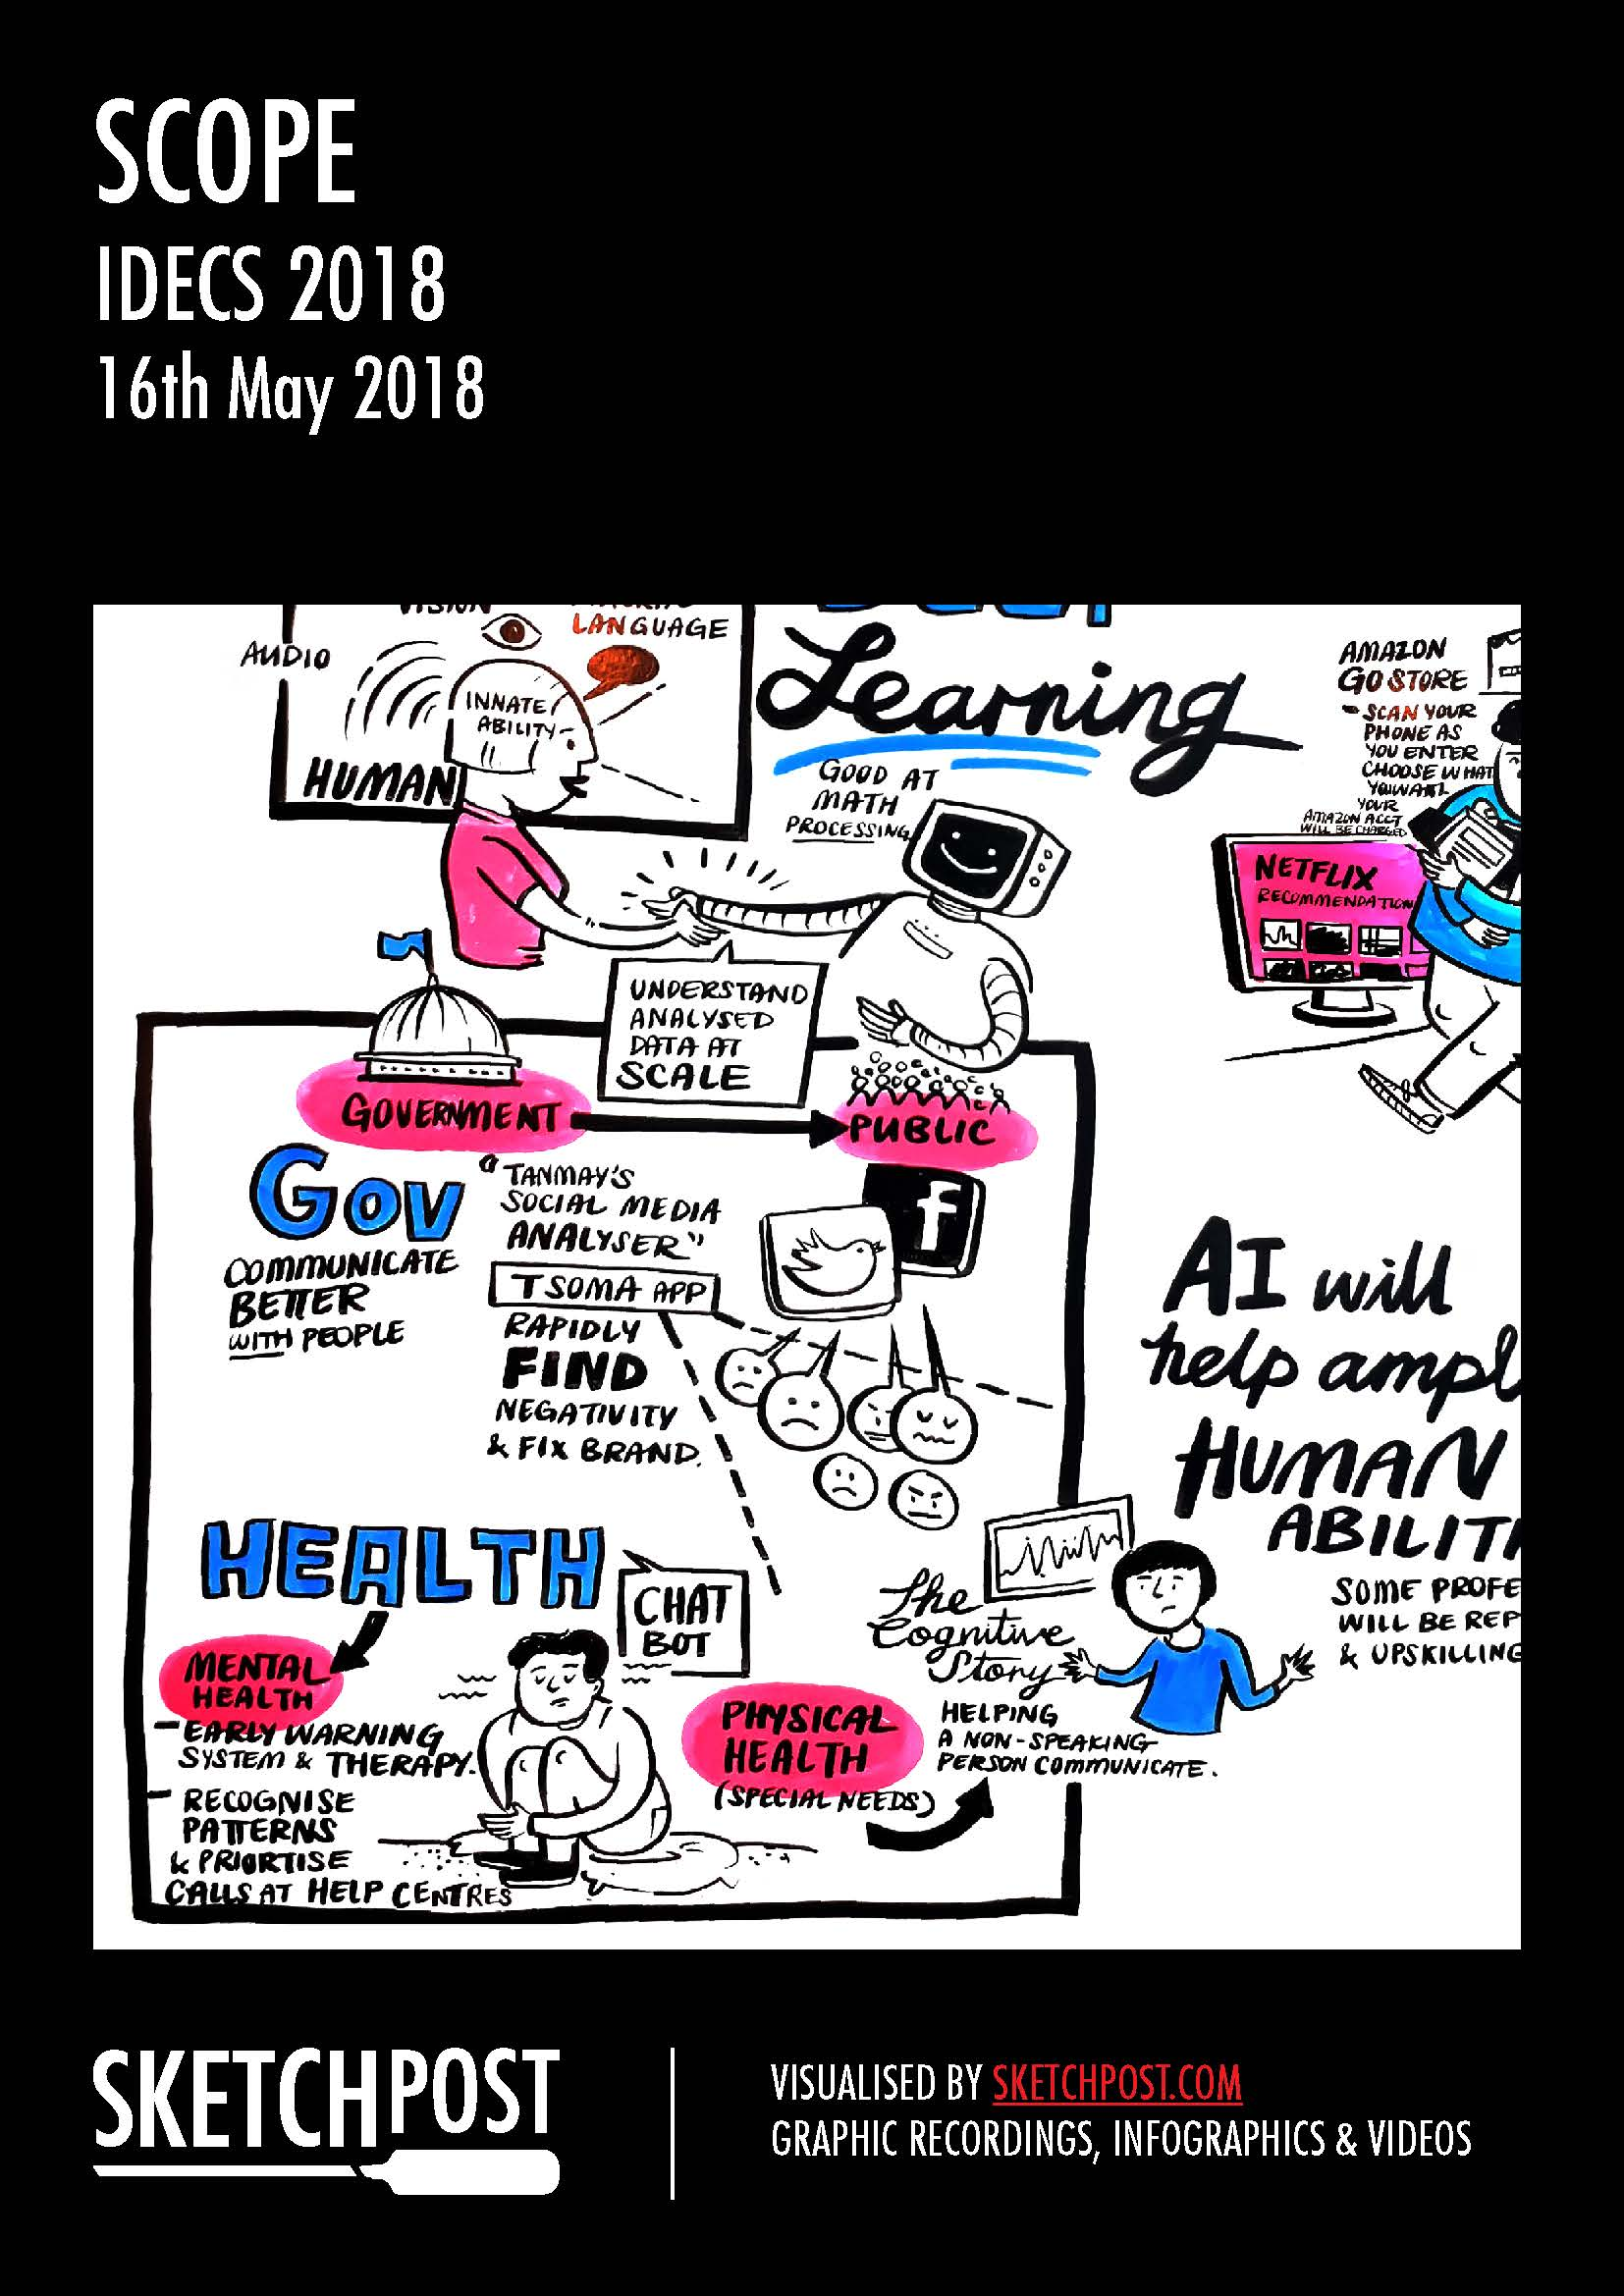 SCOPE IDECS 2018 sketchpost-digital-graphic-recording-infographic-video-singapore-malaysia-hong-kong